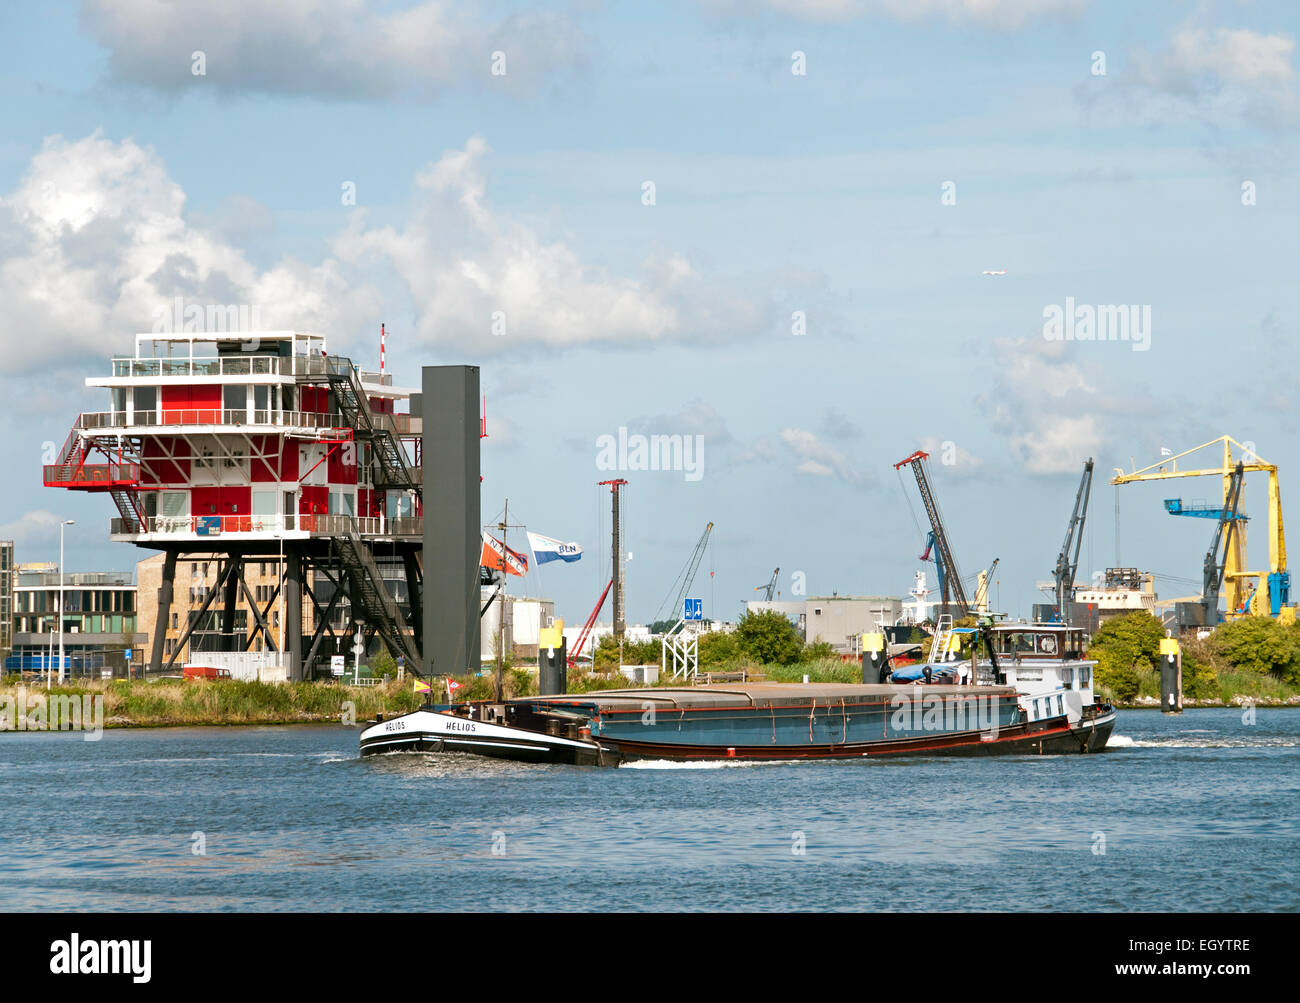 REM Eiland - 2011 Restaurant on the IJ Port Amsterdam Netherlands ( REM Island built in the Republic of Ireland - Stock Image